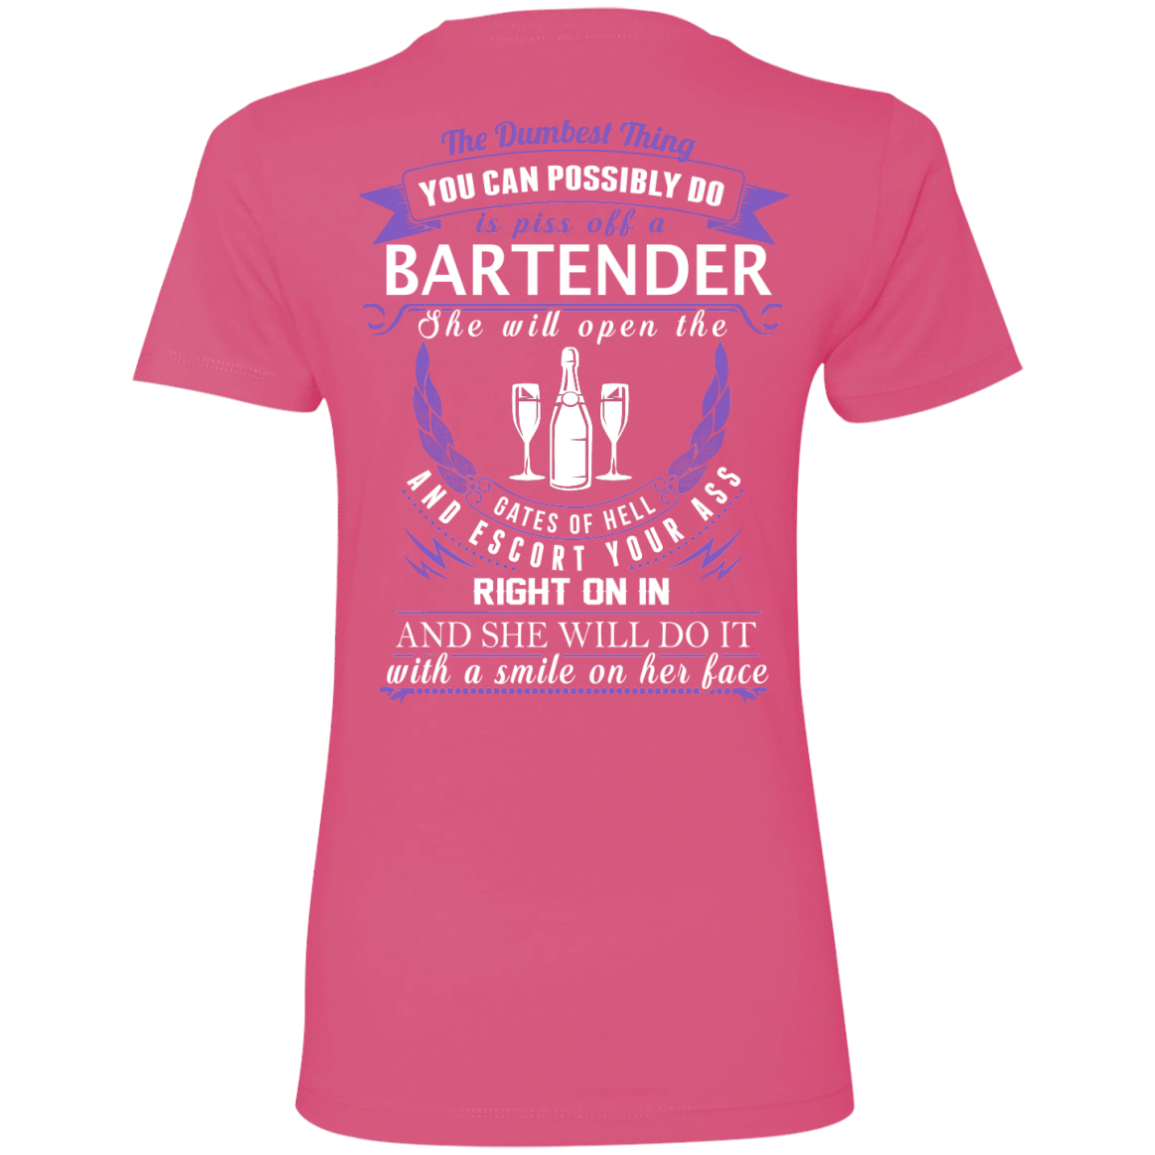 The Dumbest Thing...Bartender...With a smile on her face - TheSunCat.com - 9